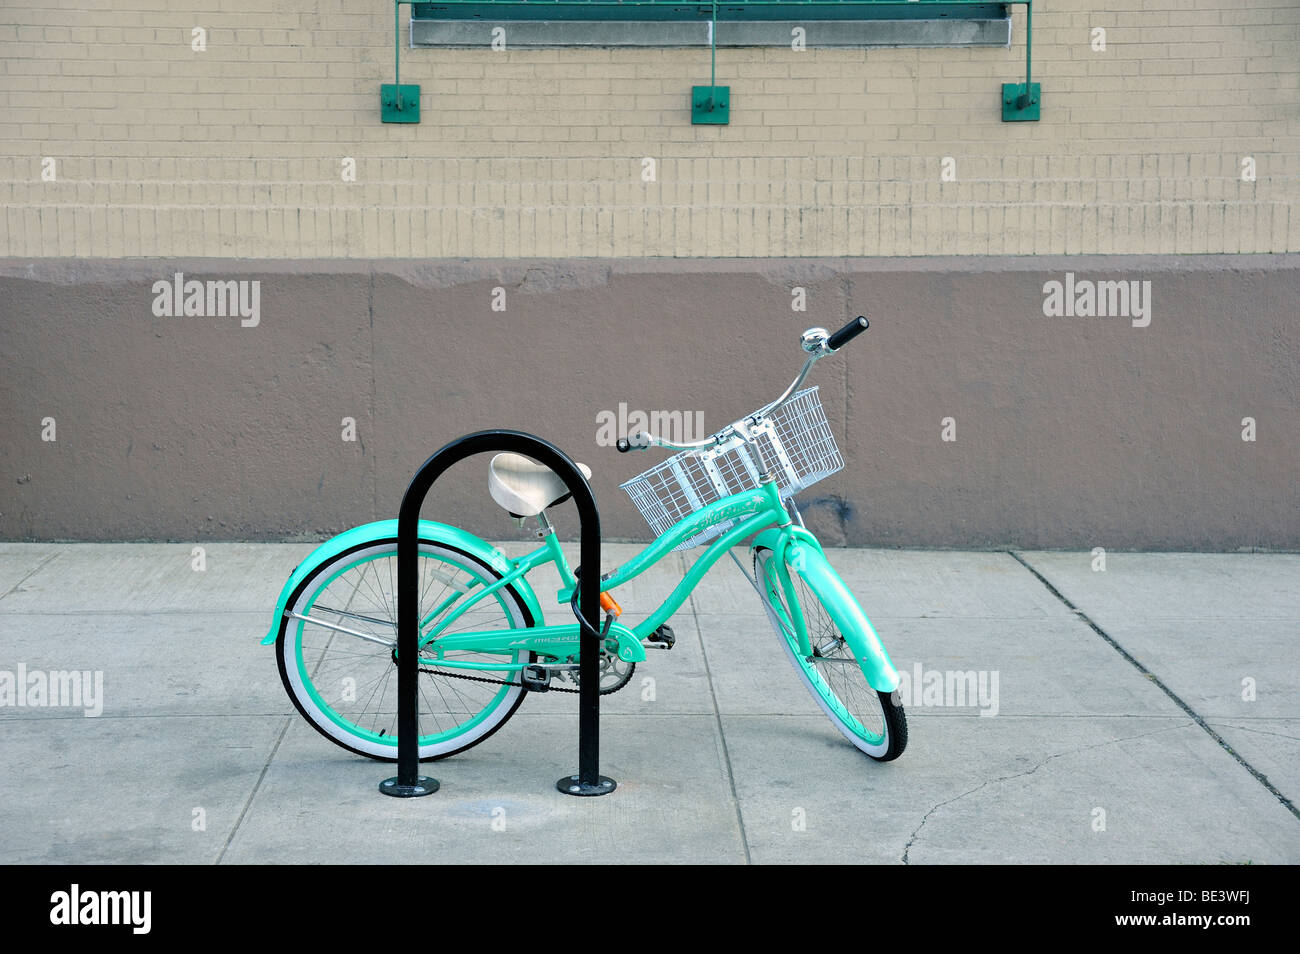 A women's bicycle tied to a bike rake in New York City - Stock Image